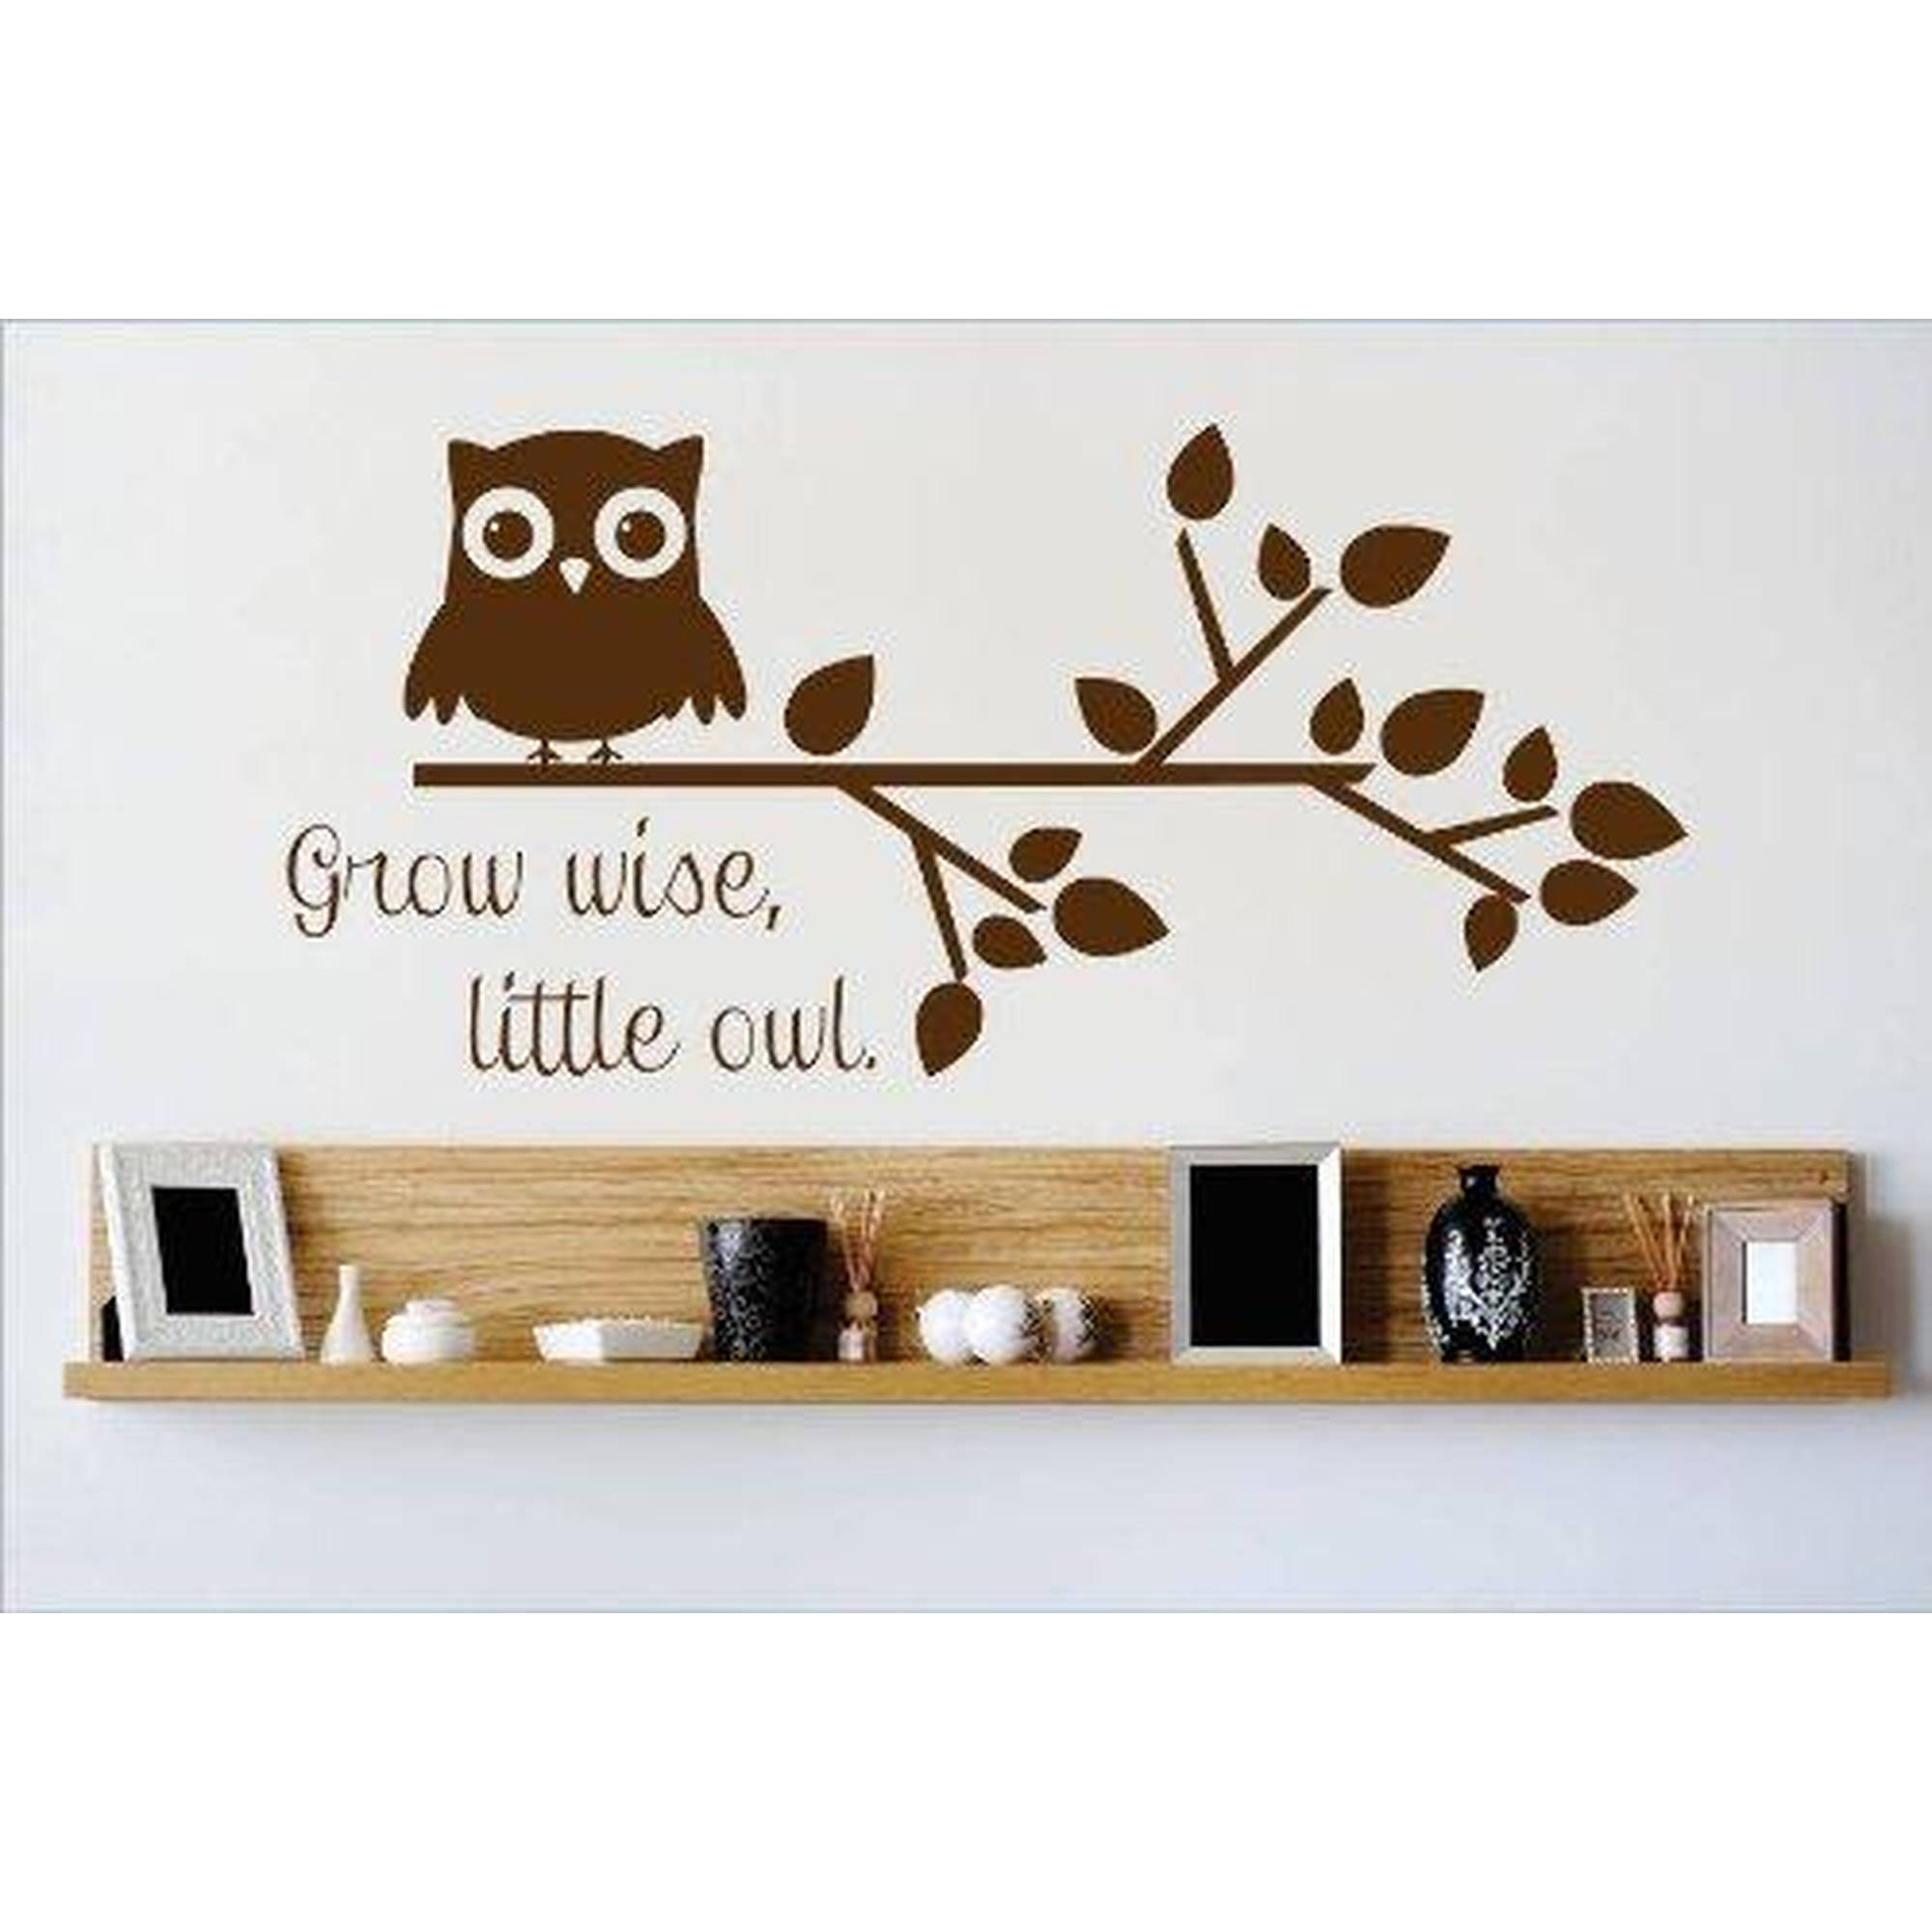 "Owl On A tree Branch Grow Wise Little Owl Picture Art Vinyl Wall Decal, 10"" x 20"", Brown"